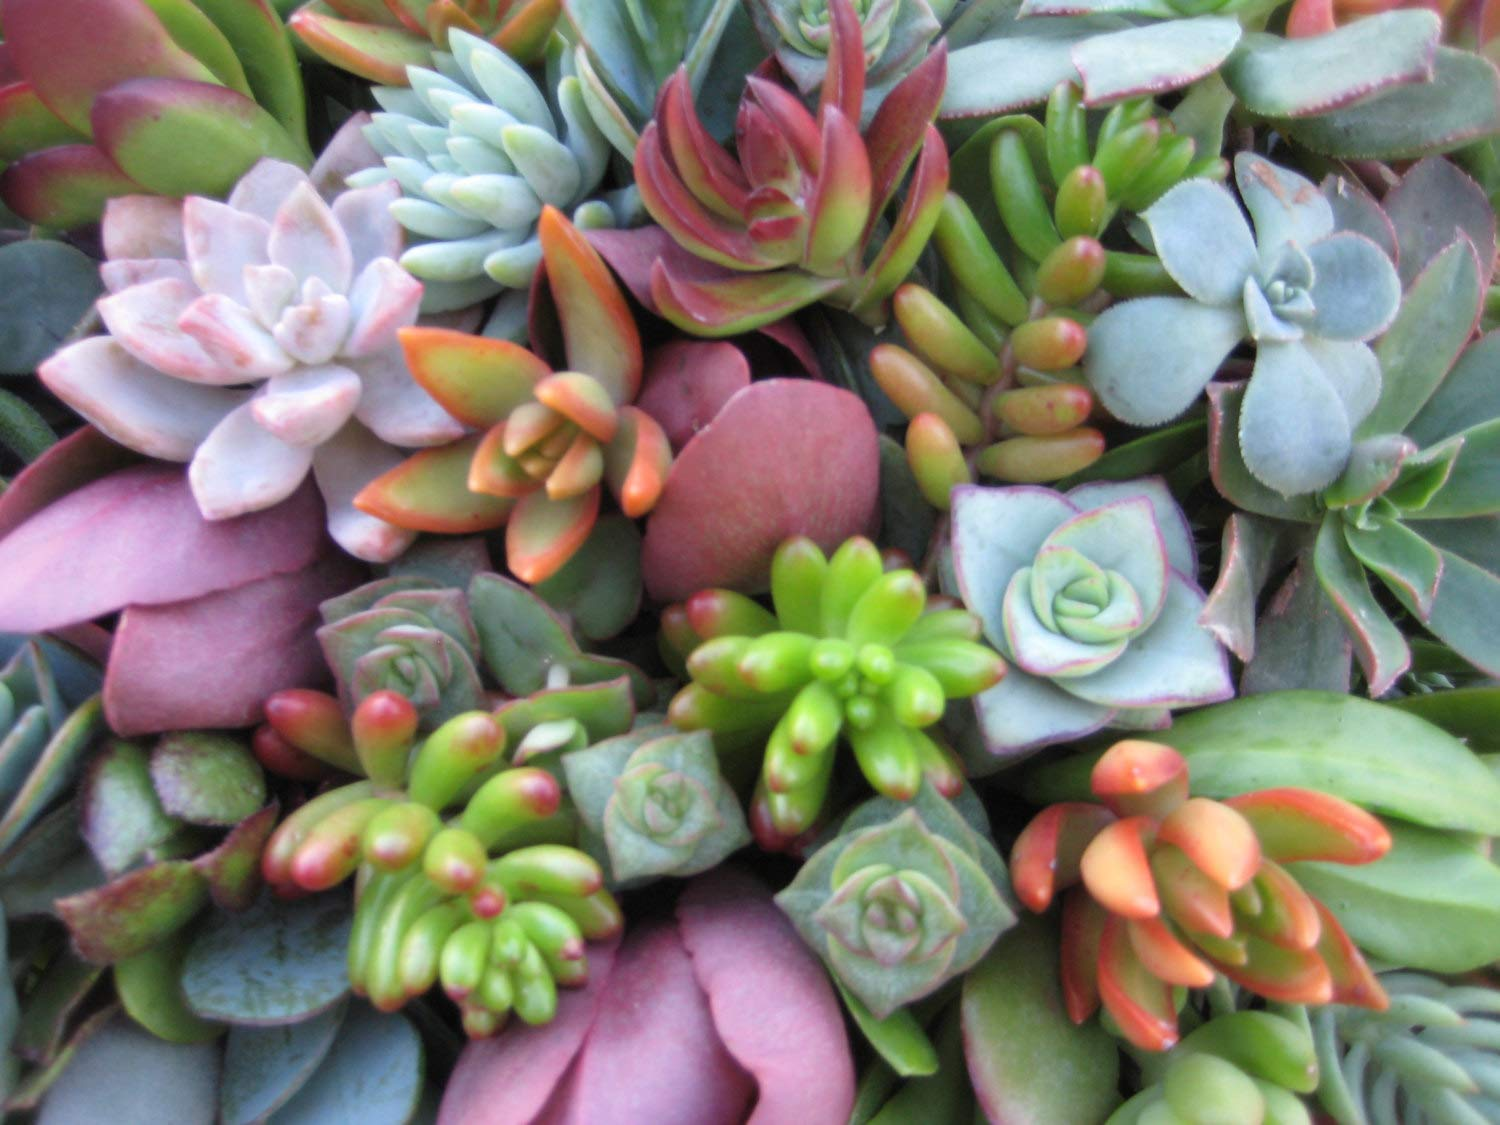 Live Succulent Cuttings 10-100 Assorted Varieties Beginners Succulents, Mini Gardens, and as Starter Plants (50) by The Valley Garden